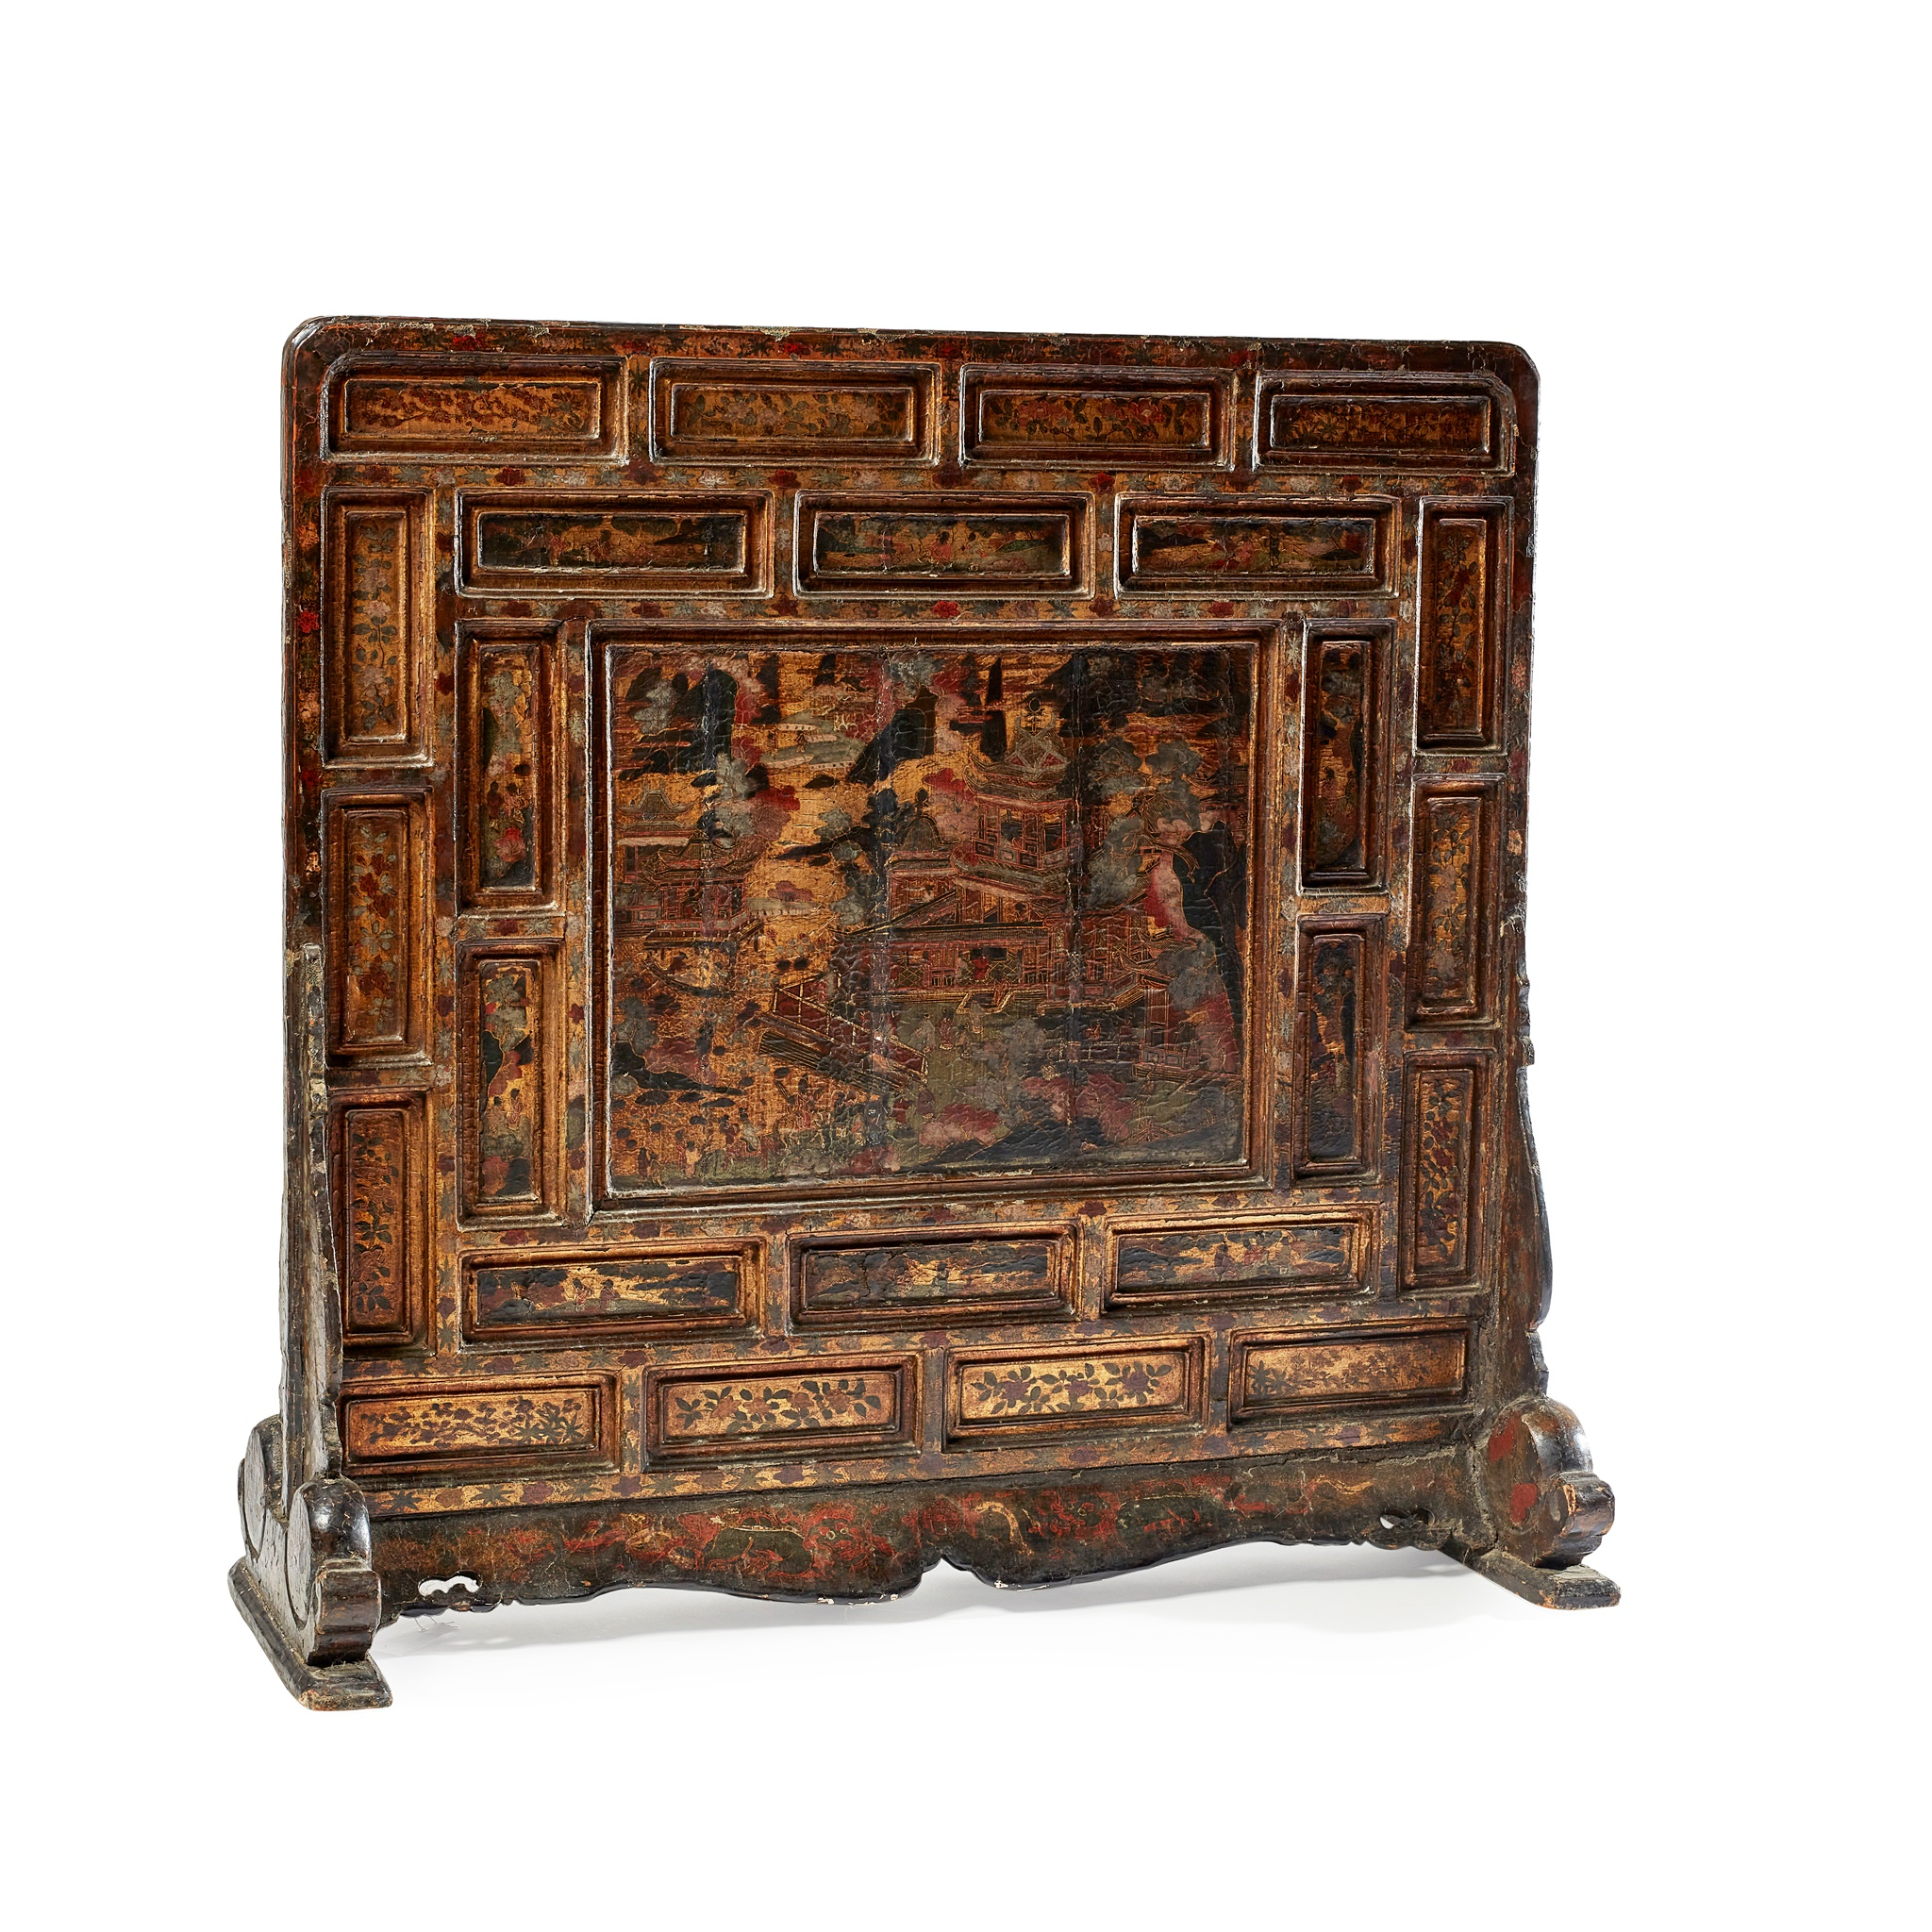 LYON & TURNBULL A rare mother-of-pearl inlaid black lacquer 'Pavilion of Prince Teng' screen Ming Dynasty, 16th-17th Century 93cm x 95.5cm